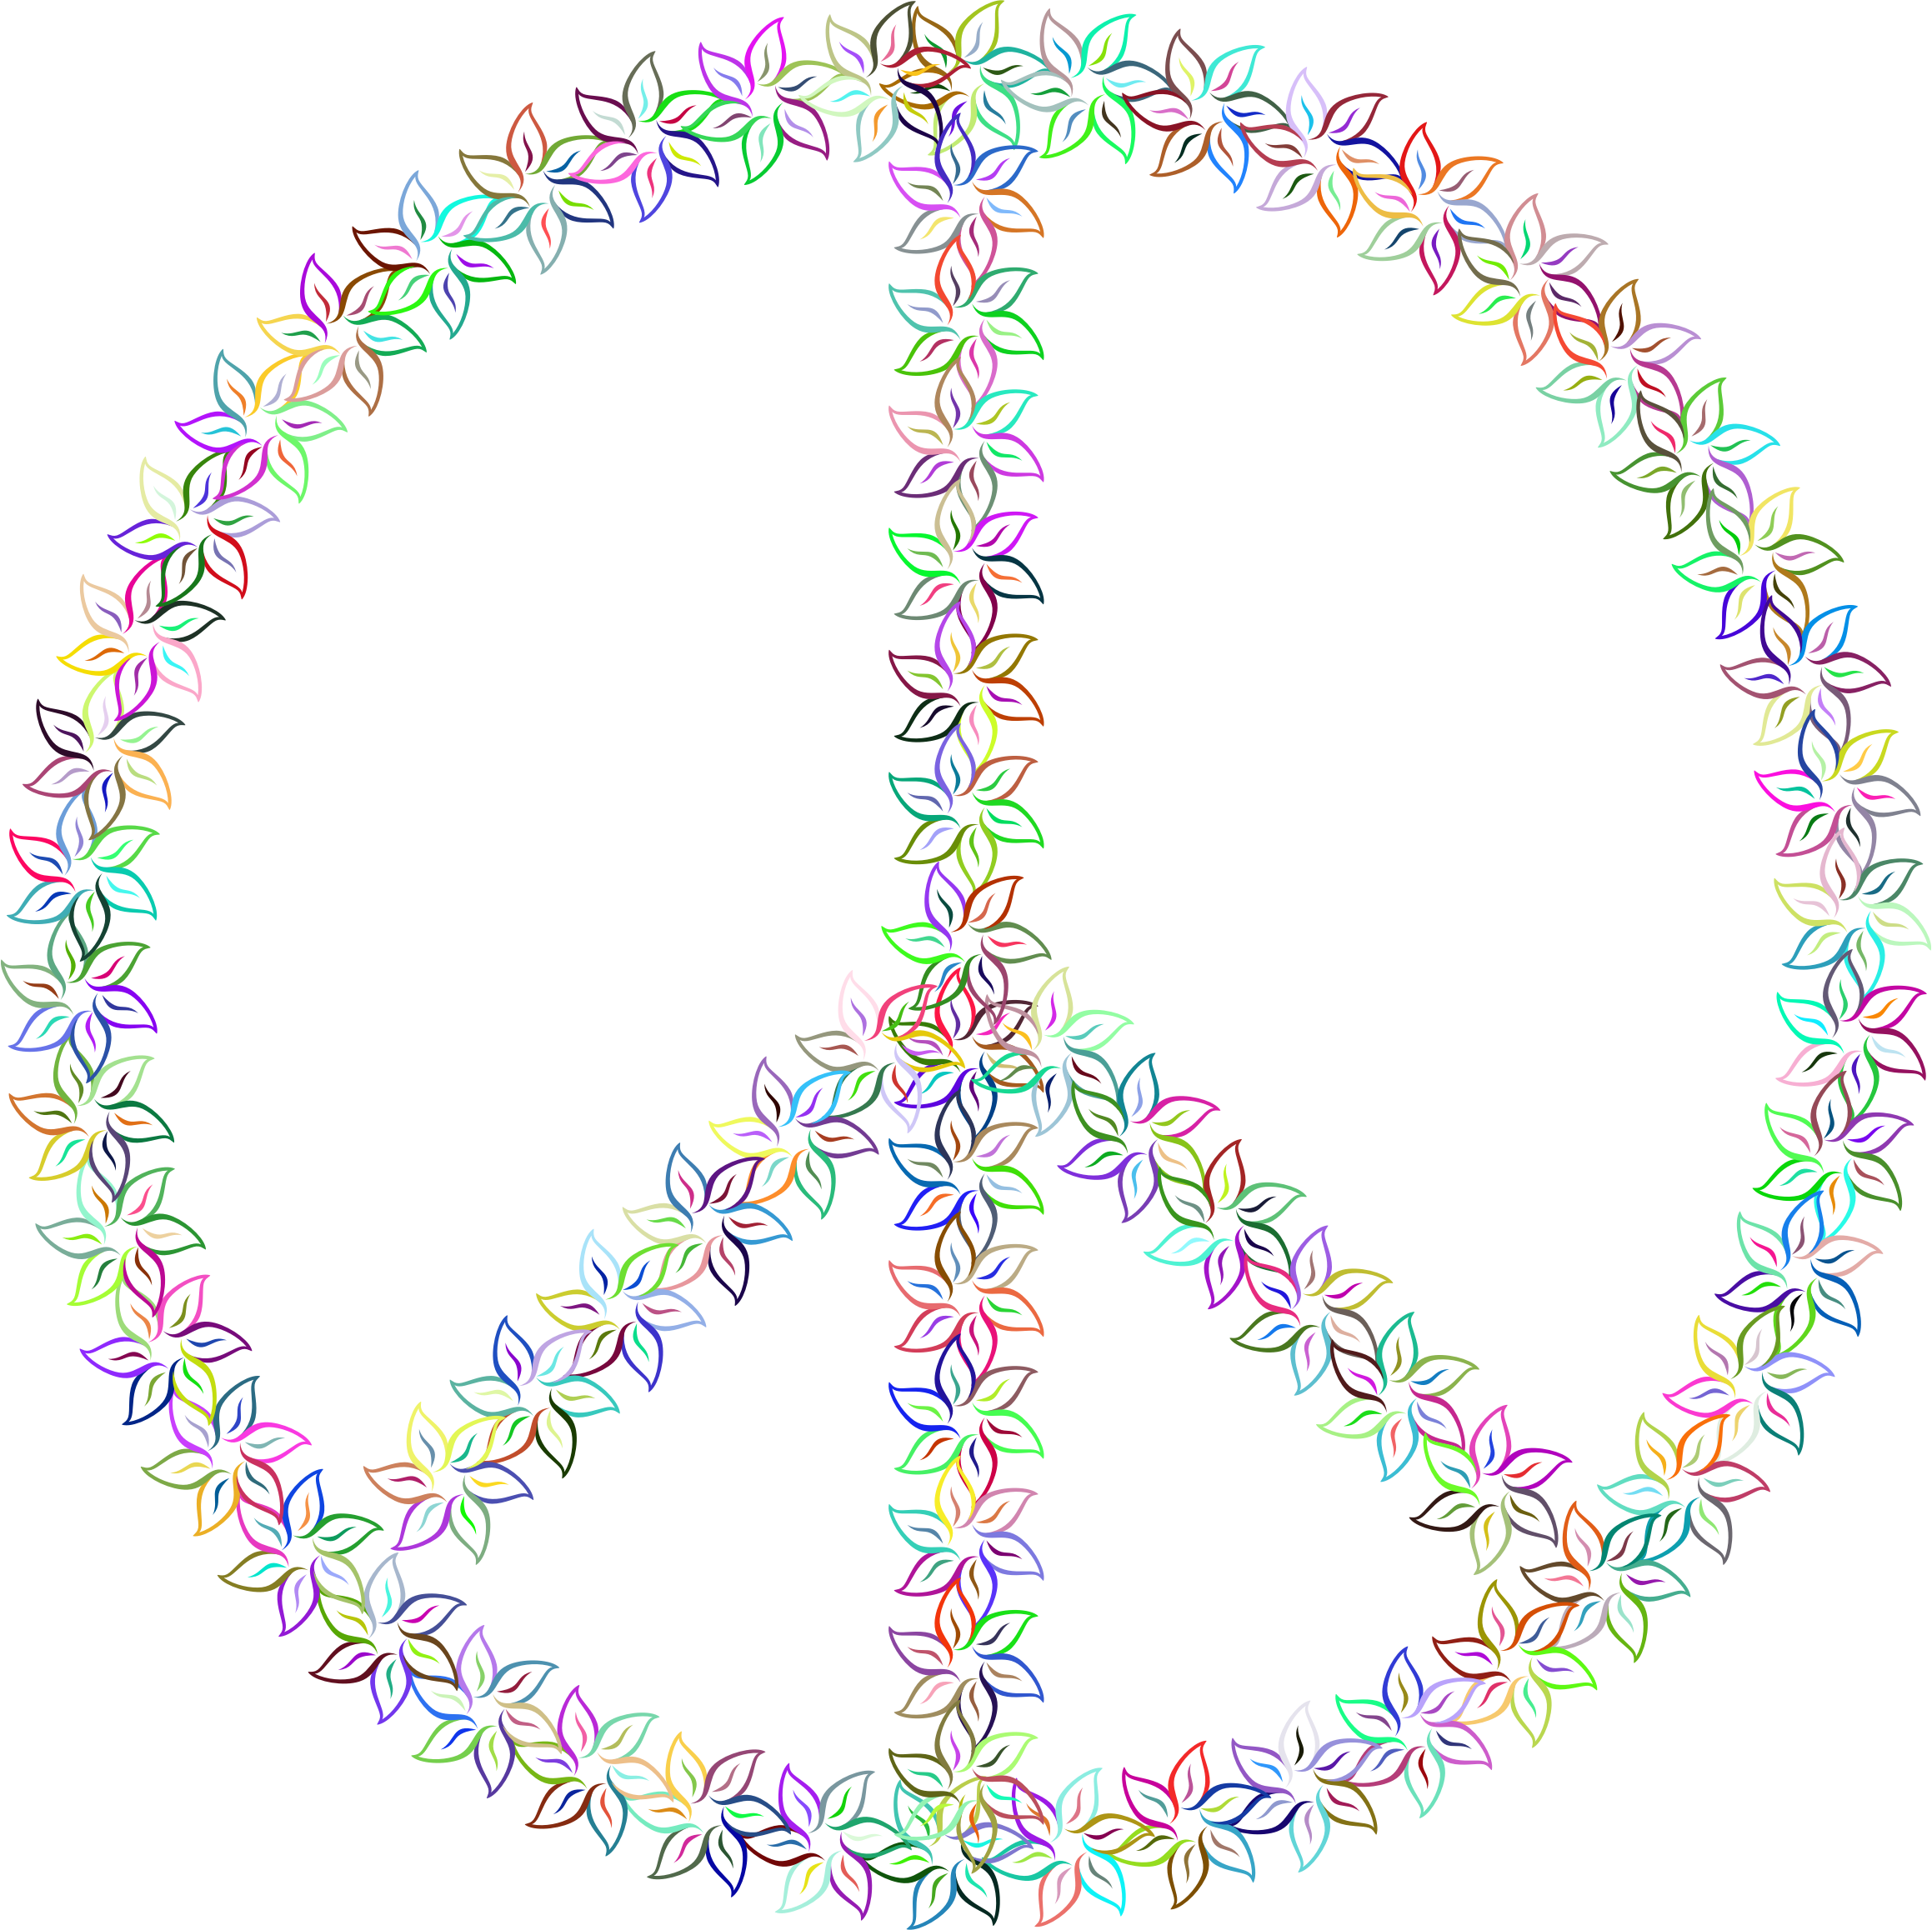 Floral Peace Sign Prismatic by GDJ